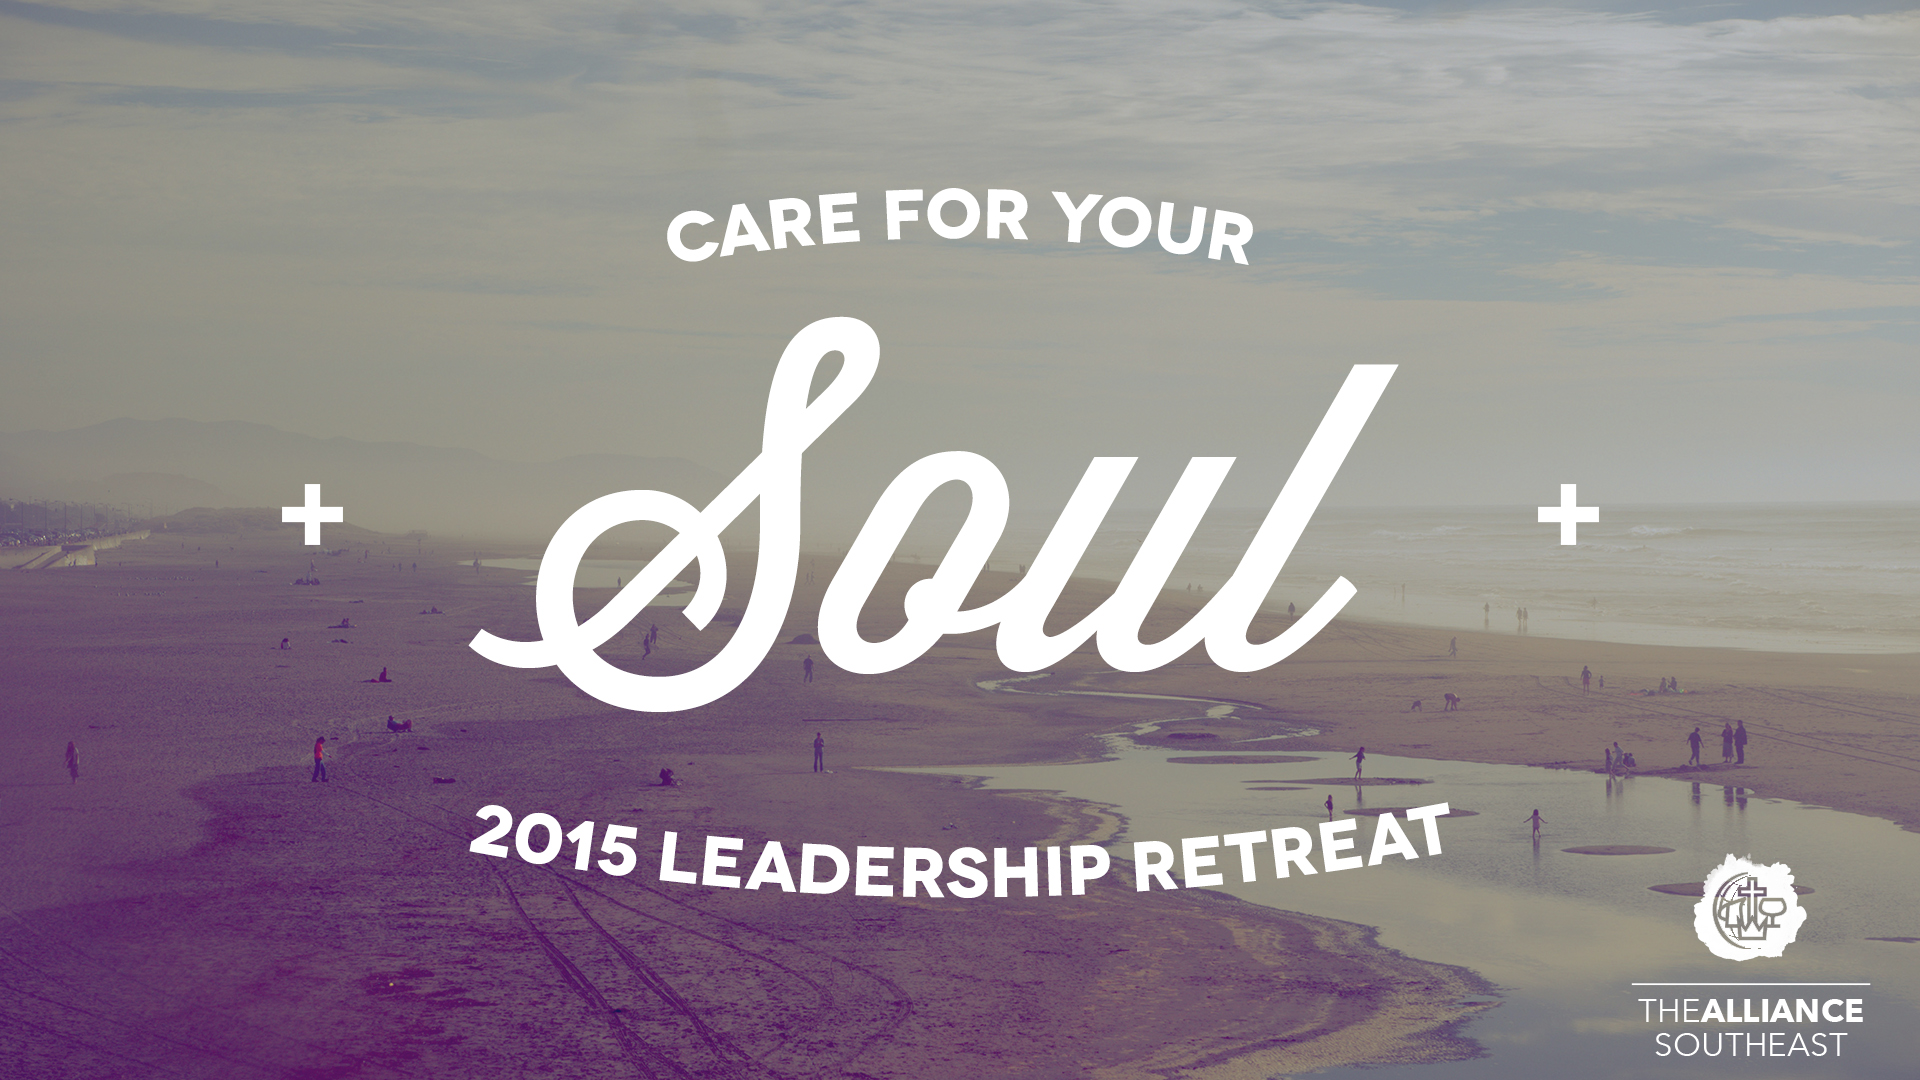 2015 Leadership Retreat MAIN TITLE.jpg